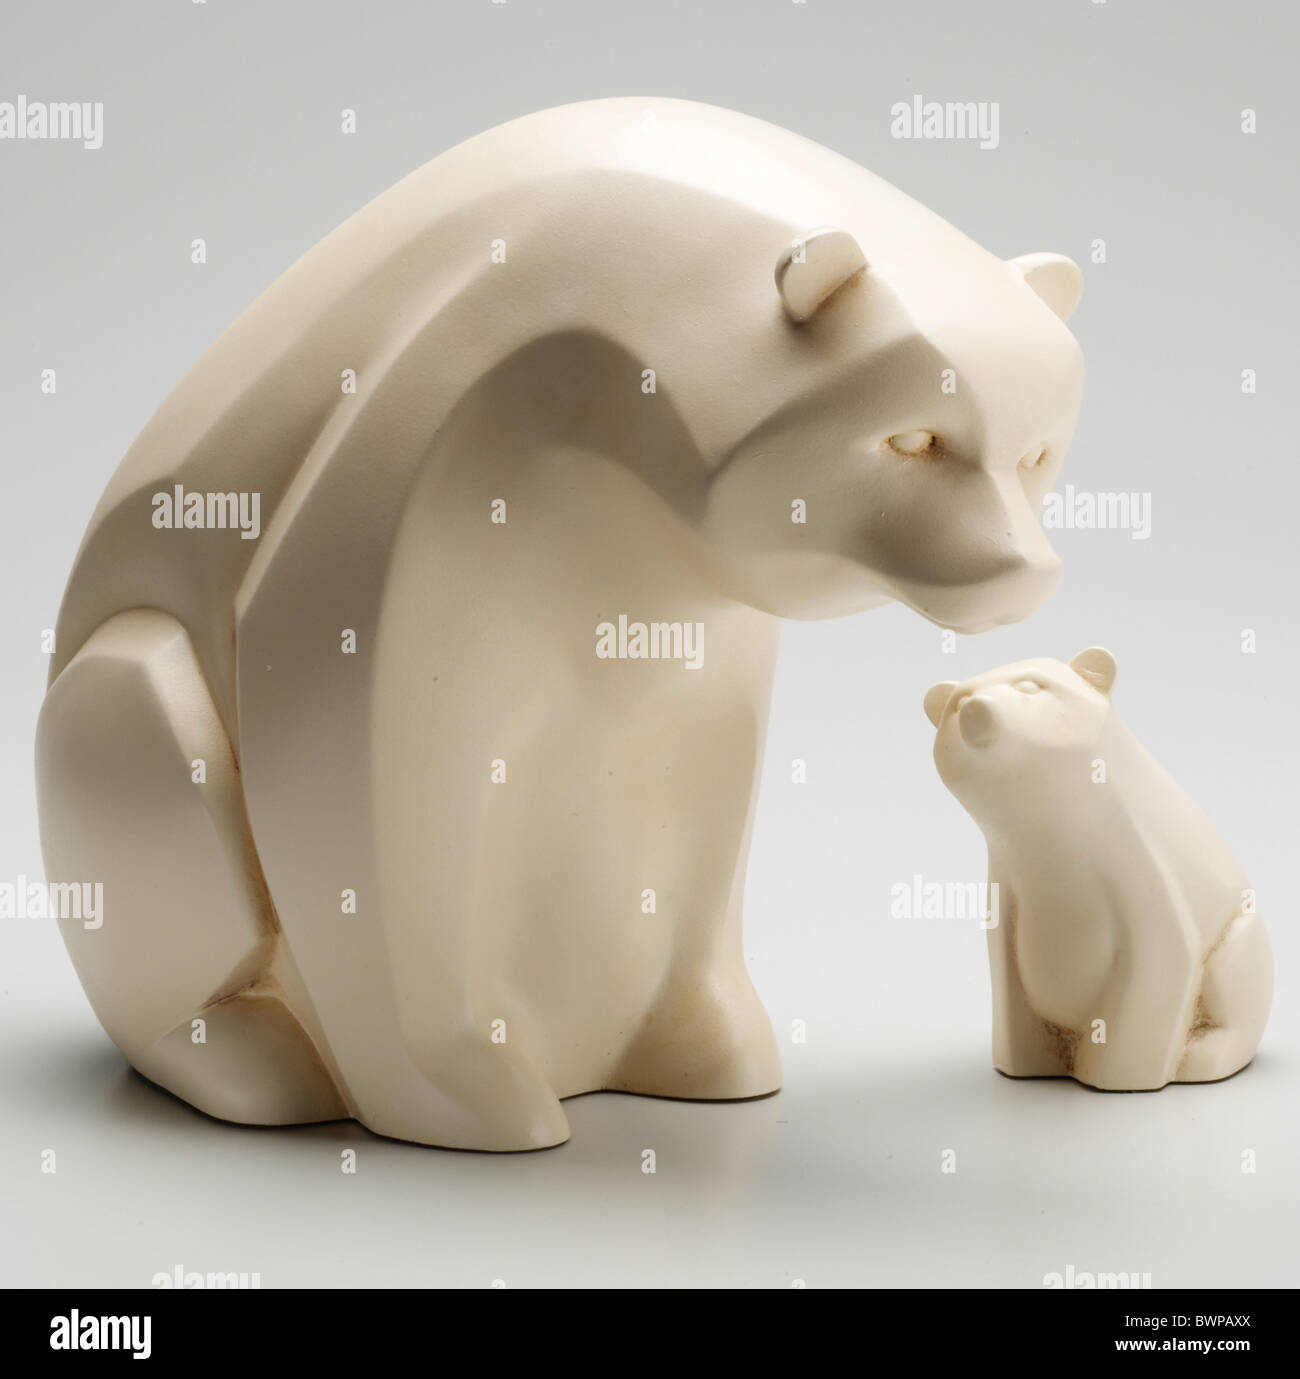 Polar bear sculpture - Stock Image